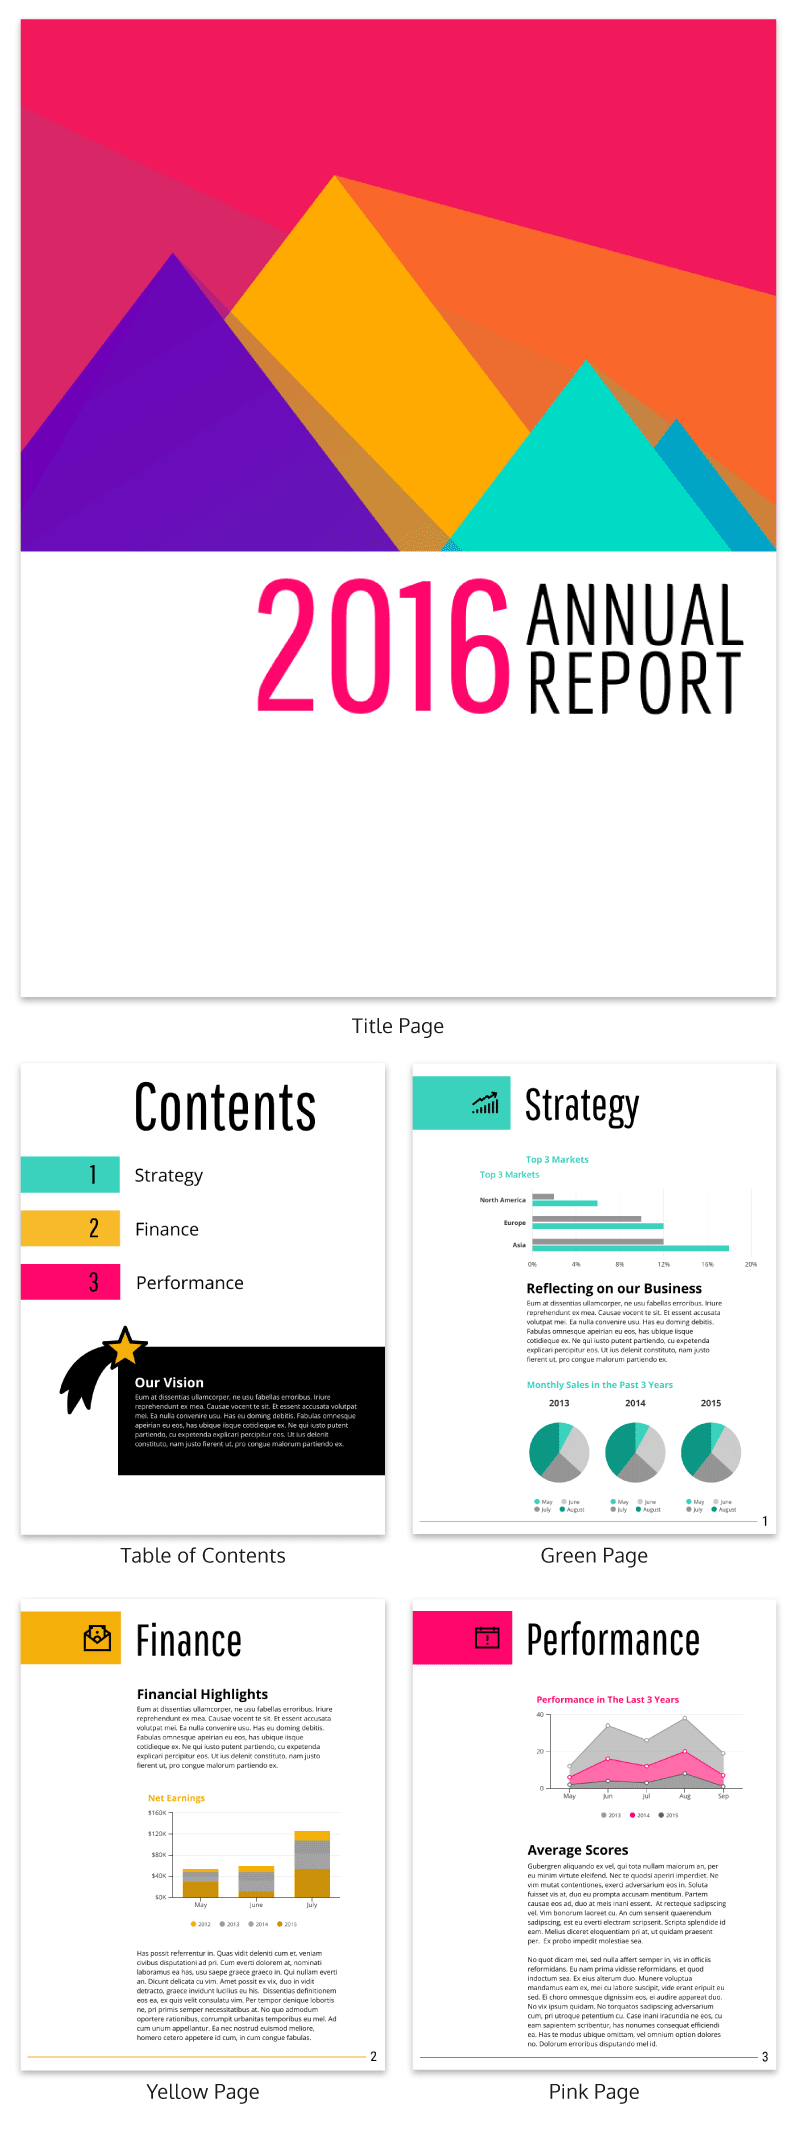 20 White Paper Examples Design Guide Templates Report Design Template Annual Report Design Report Design